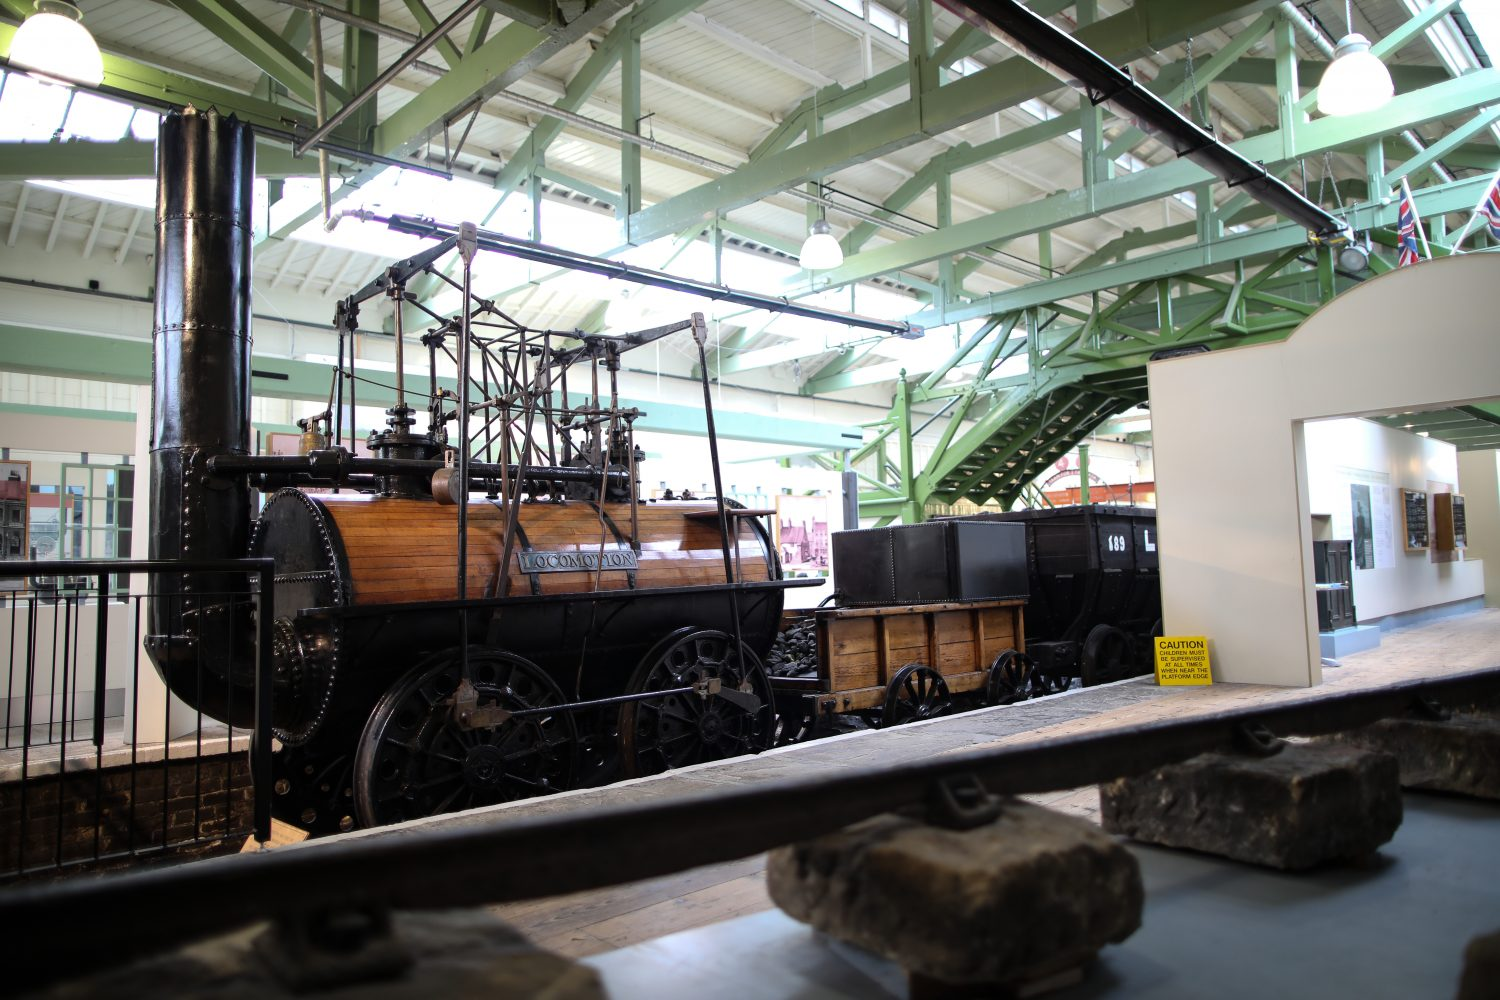 Locomotion No 1 is a very early steam train, often described as a giant barrel on wheels.